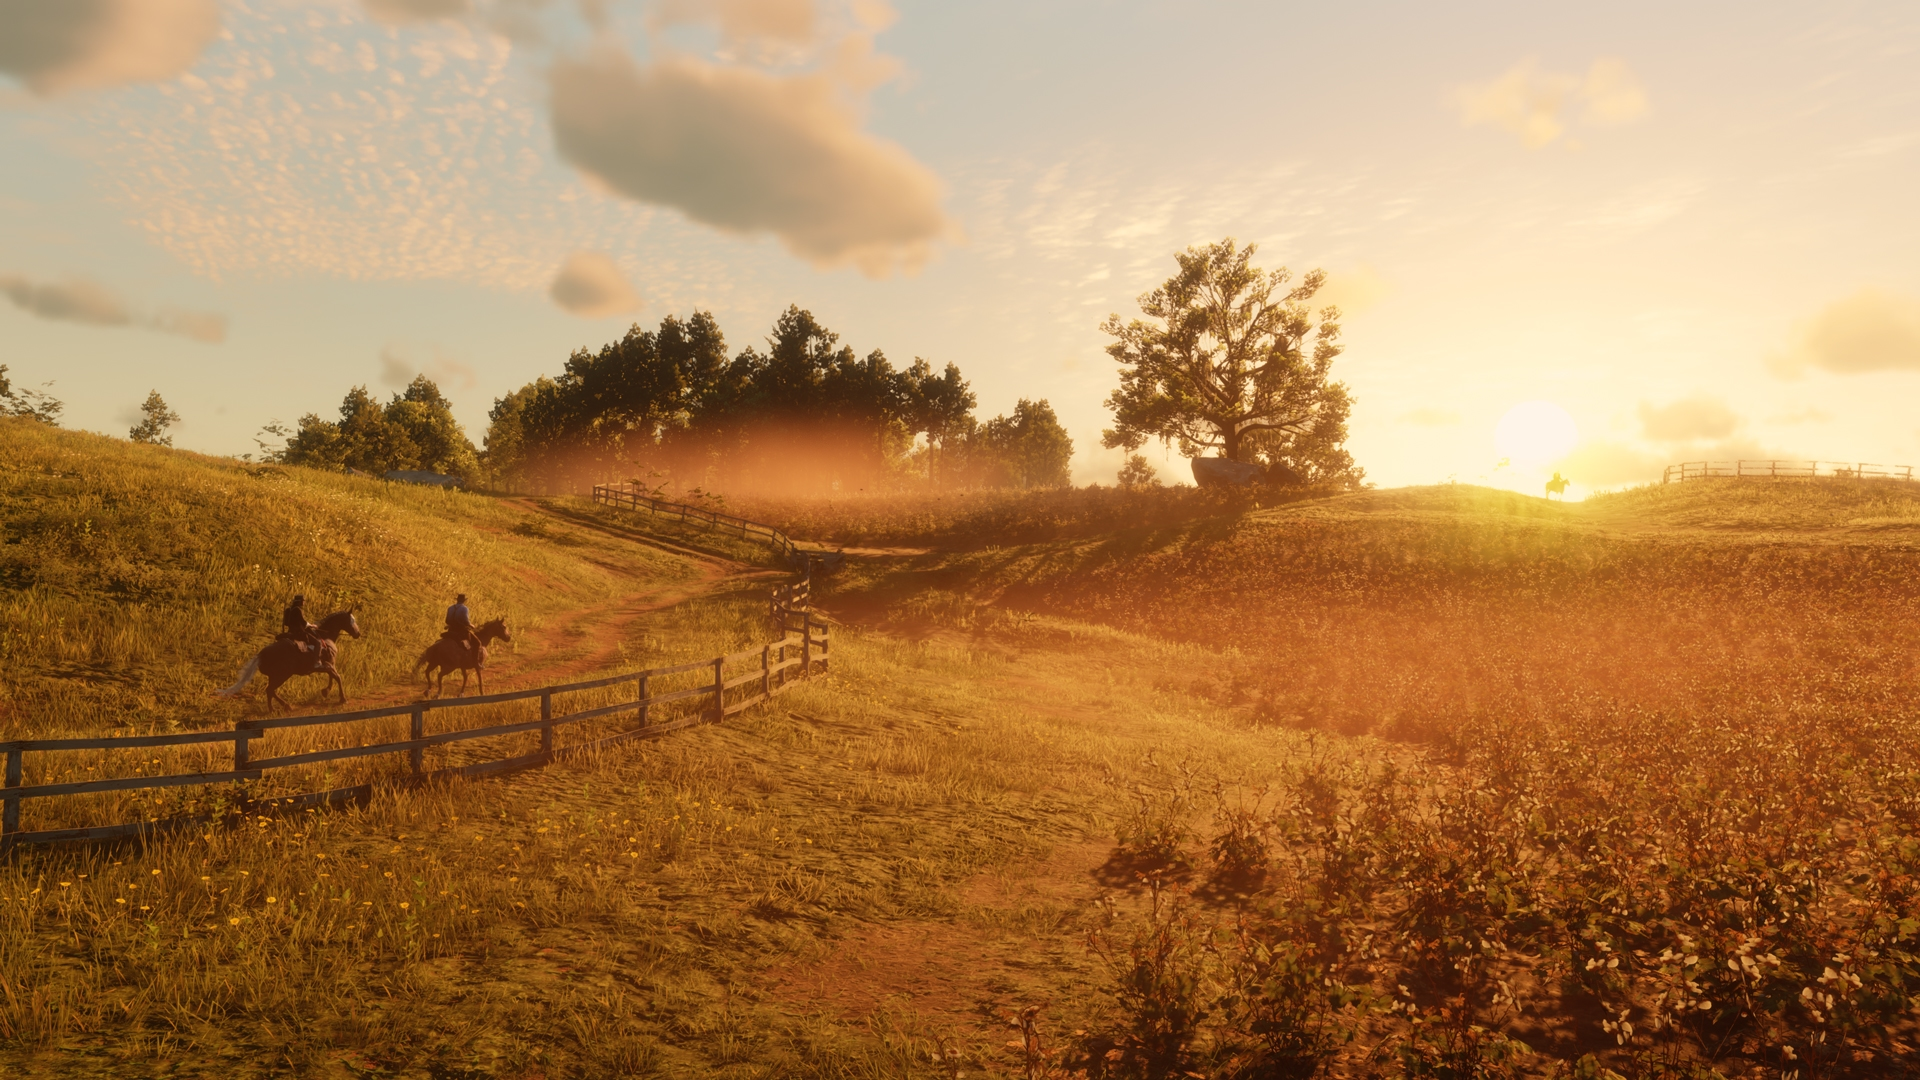 Red Dead Redemption 2 For PC Now Available to Pre-Purchase via the Rockstar Games Launcher